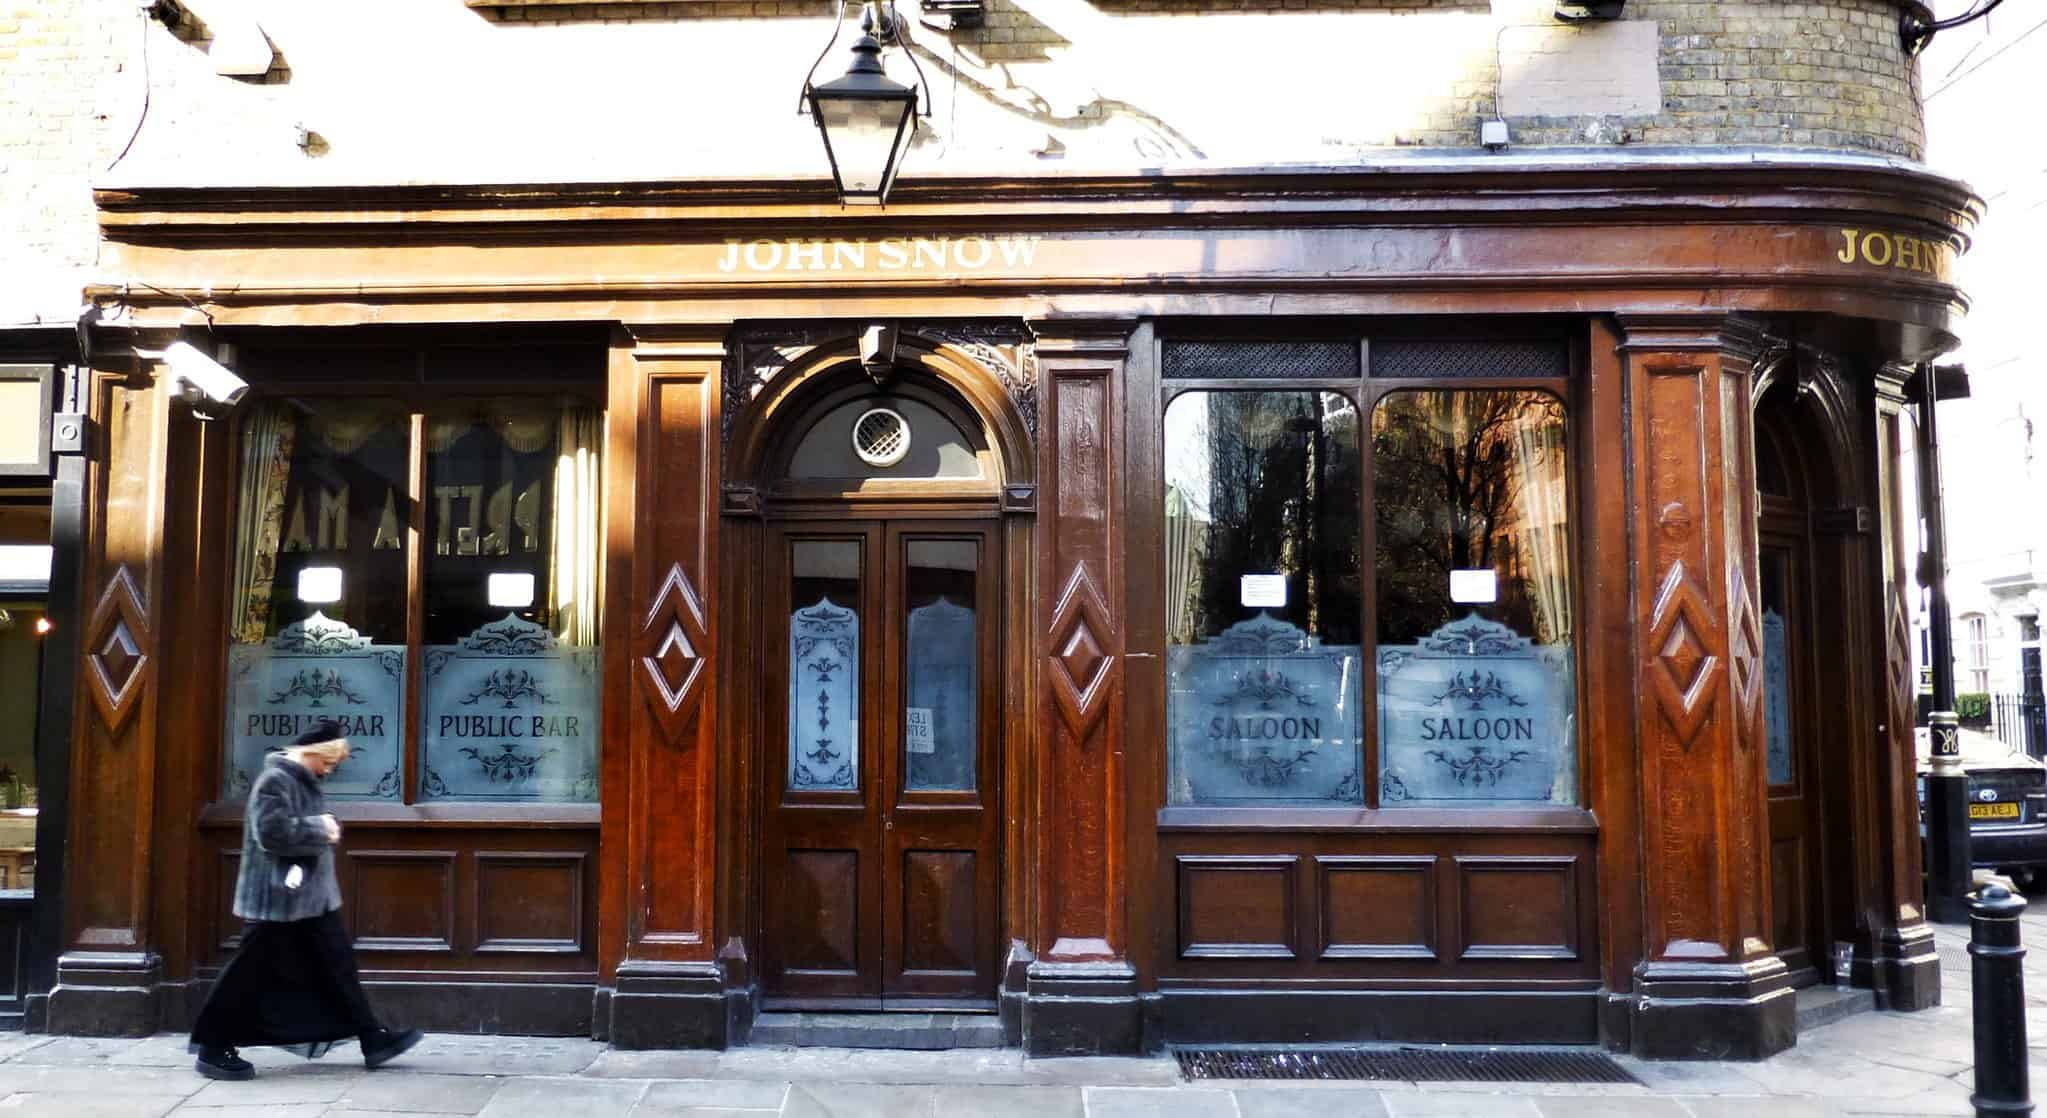 John Snow best pubs in central London | Photo: Esther Simpson / Flickr